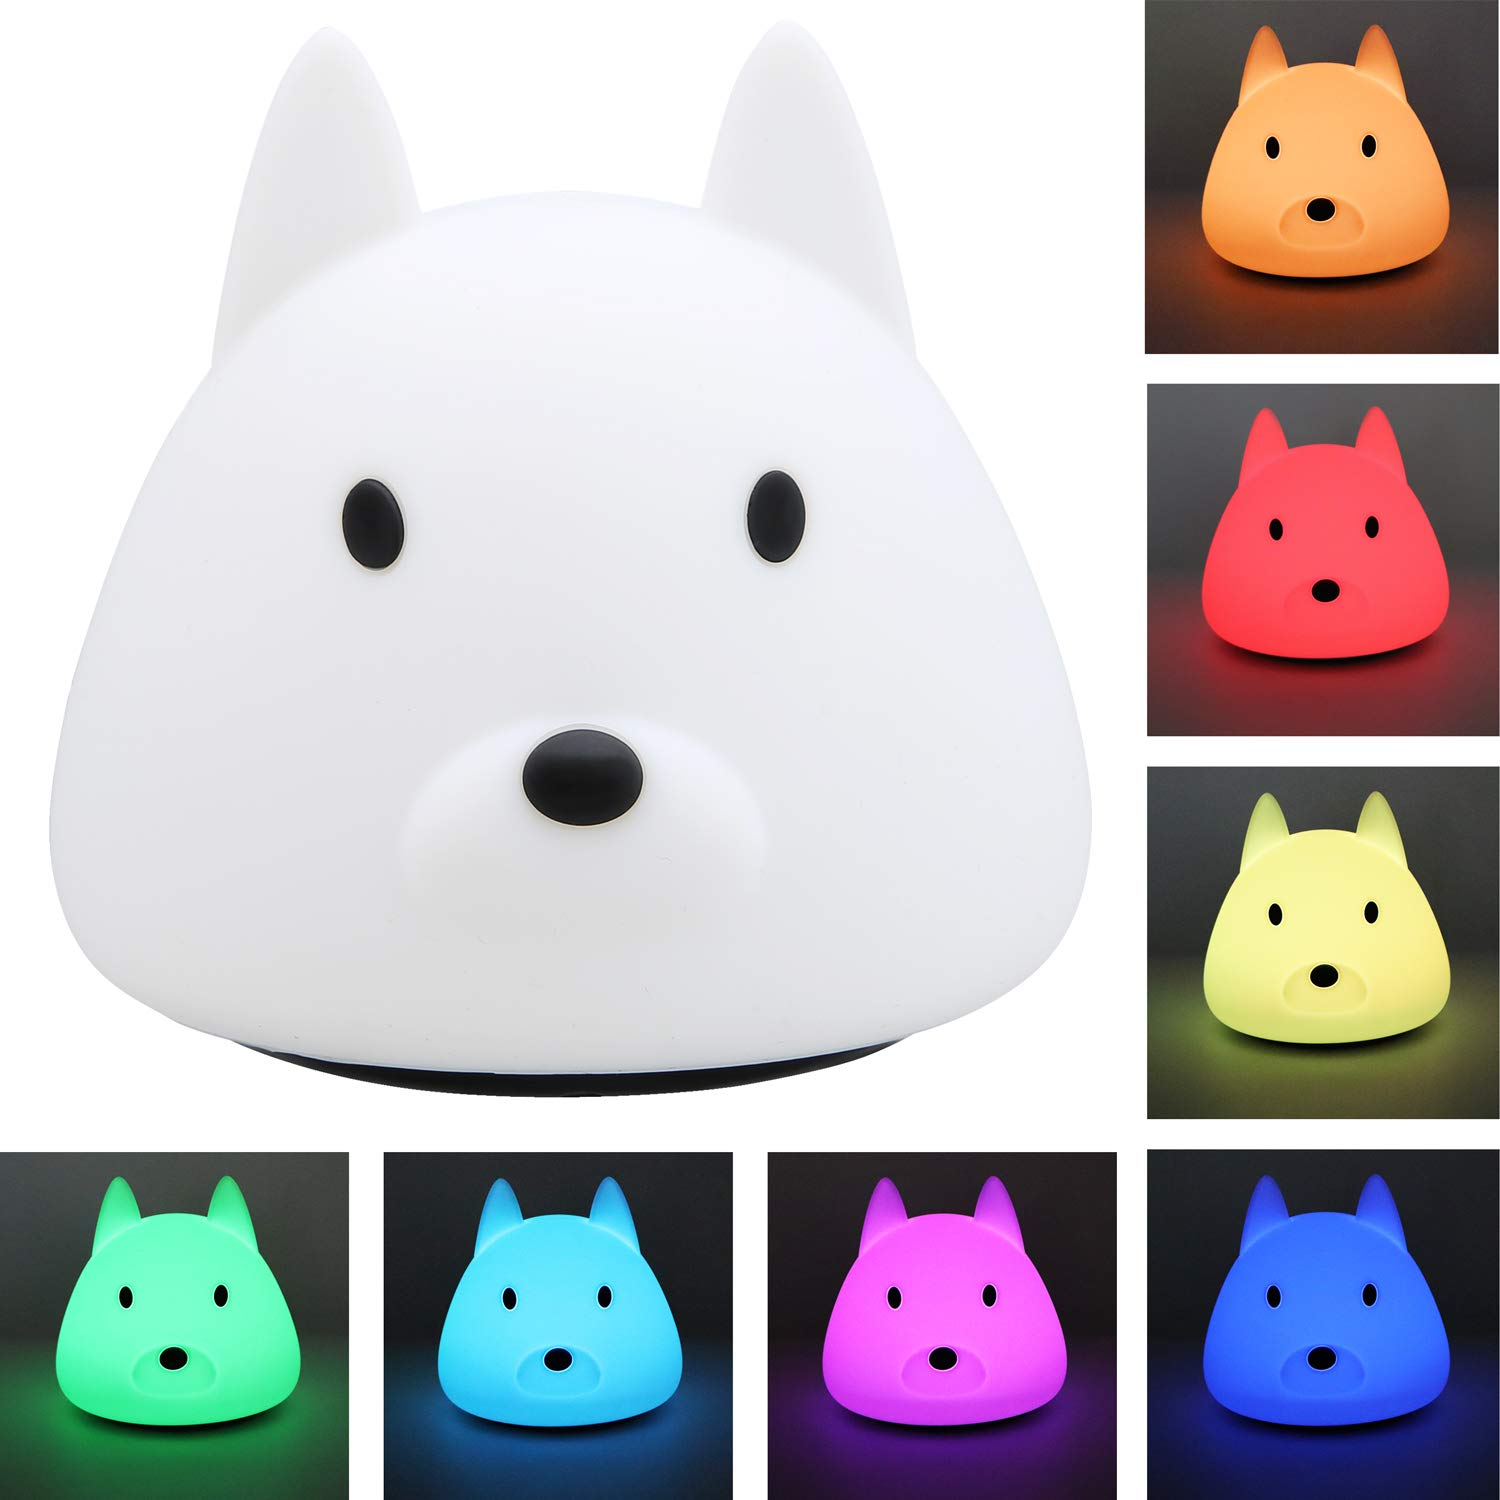 Techway LED Nursery Night Lights for Kids Cute Animal Baby Lamp Silicone Baby Night Light with Touch Sensor Portable Rechargeable Multicolor Breathing Nightlight Birthday Gifts for Bedroom Girls